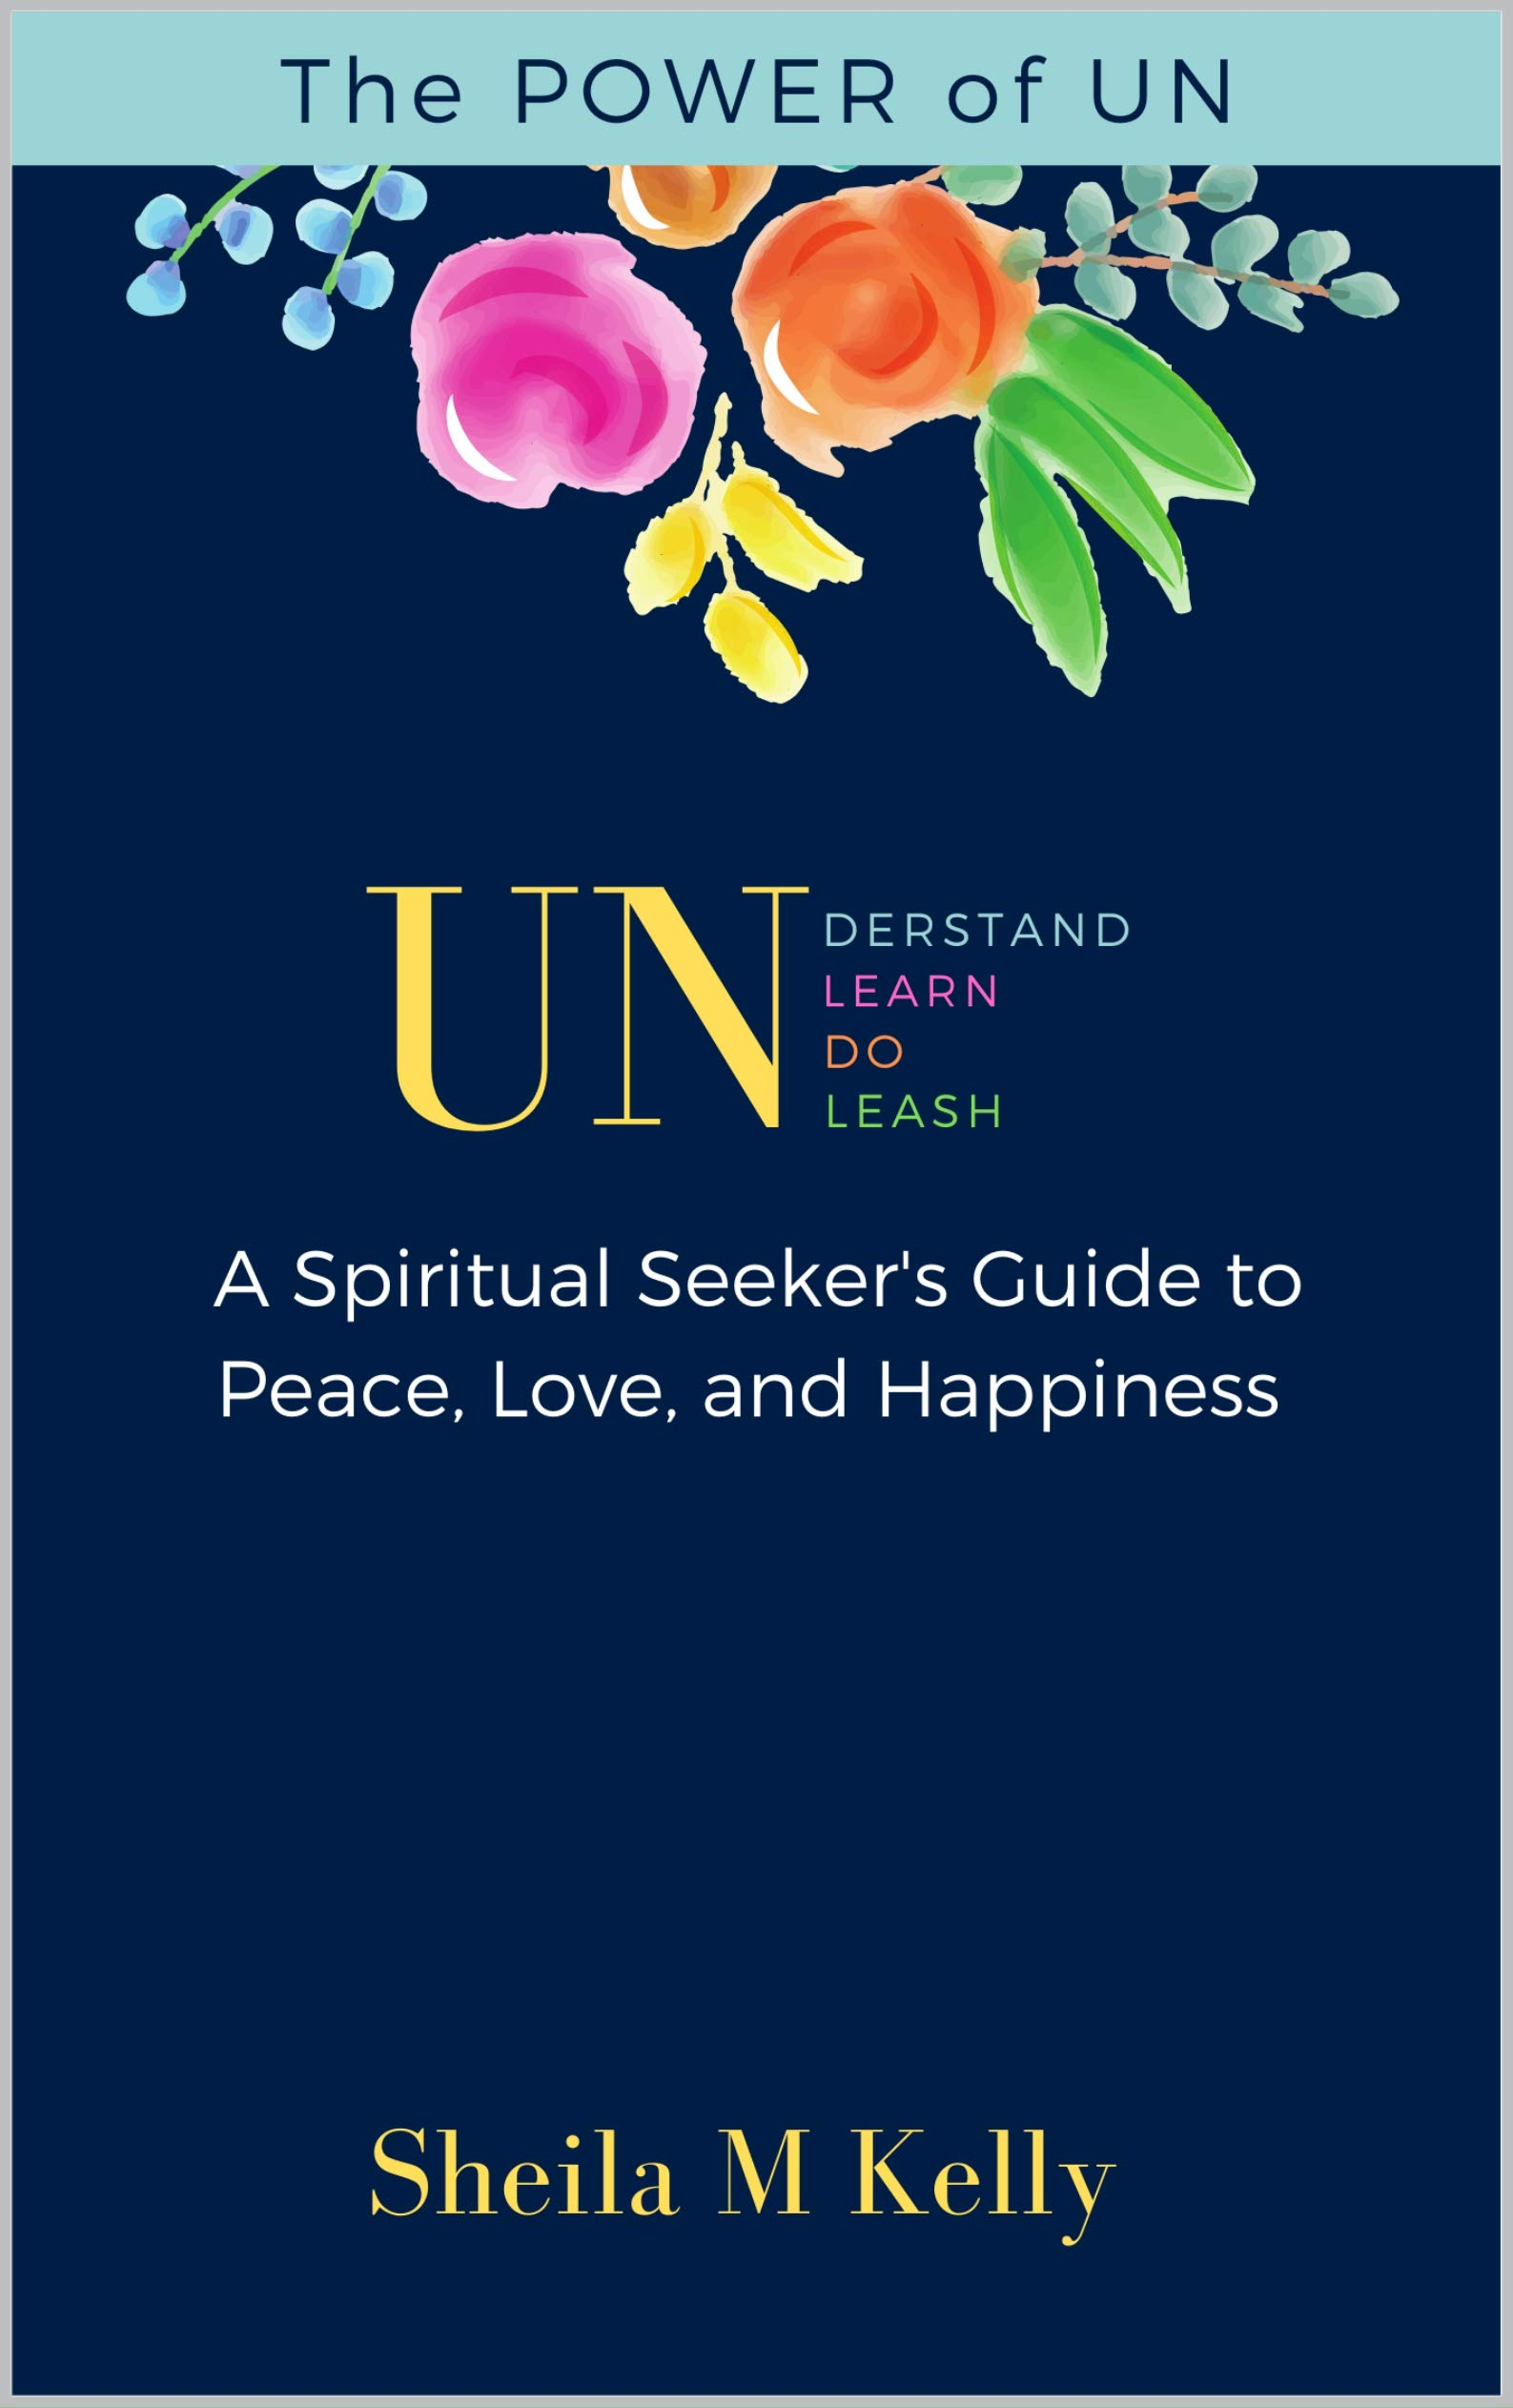 The POWER of UN: A Spiritual Seeker's Guide to Peace, Love, and Happiness